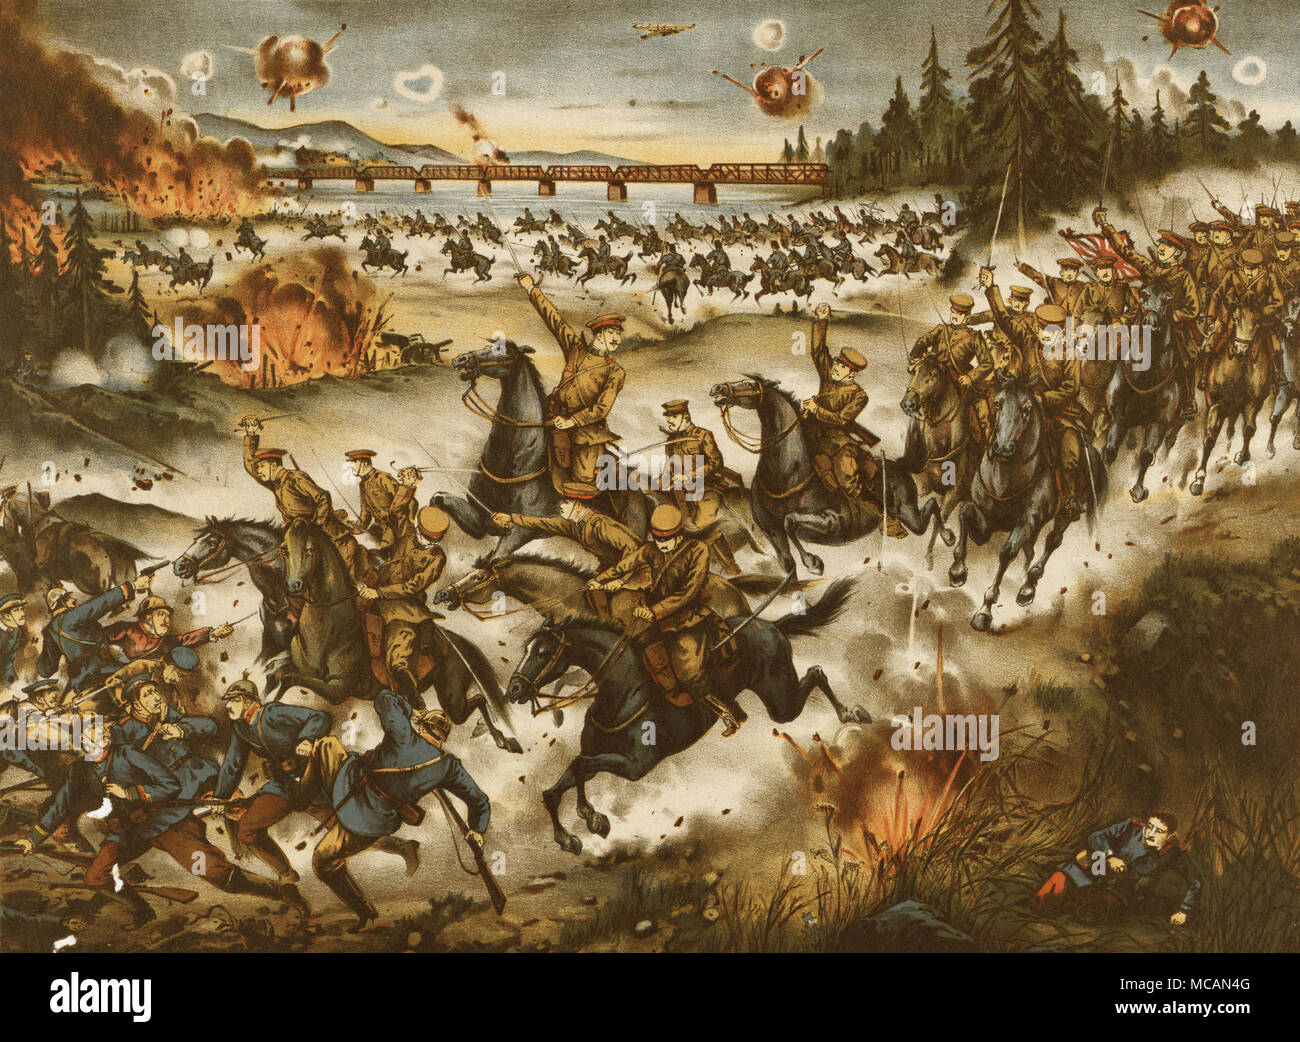 Japanese cavalry taken possession of Khobarovsk pursuing and attacking the enemies - Stock Image